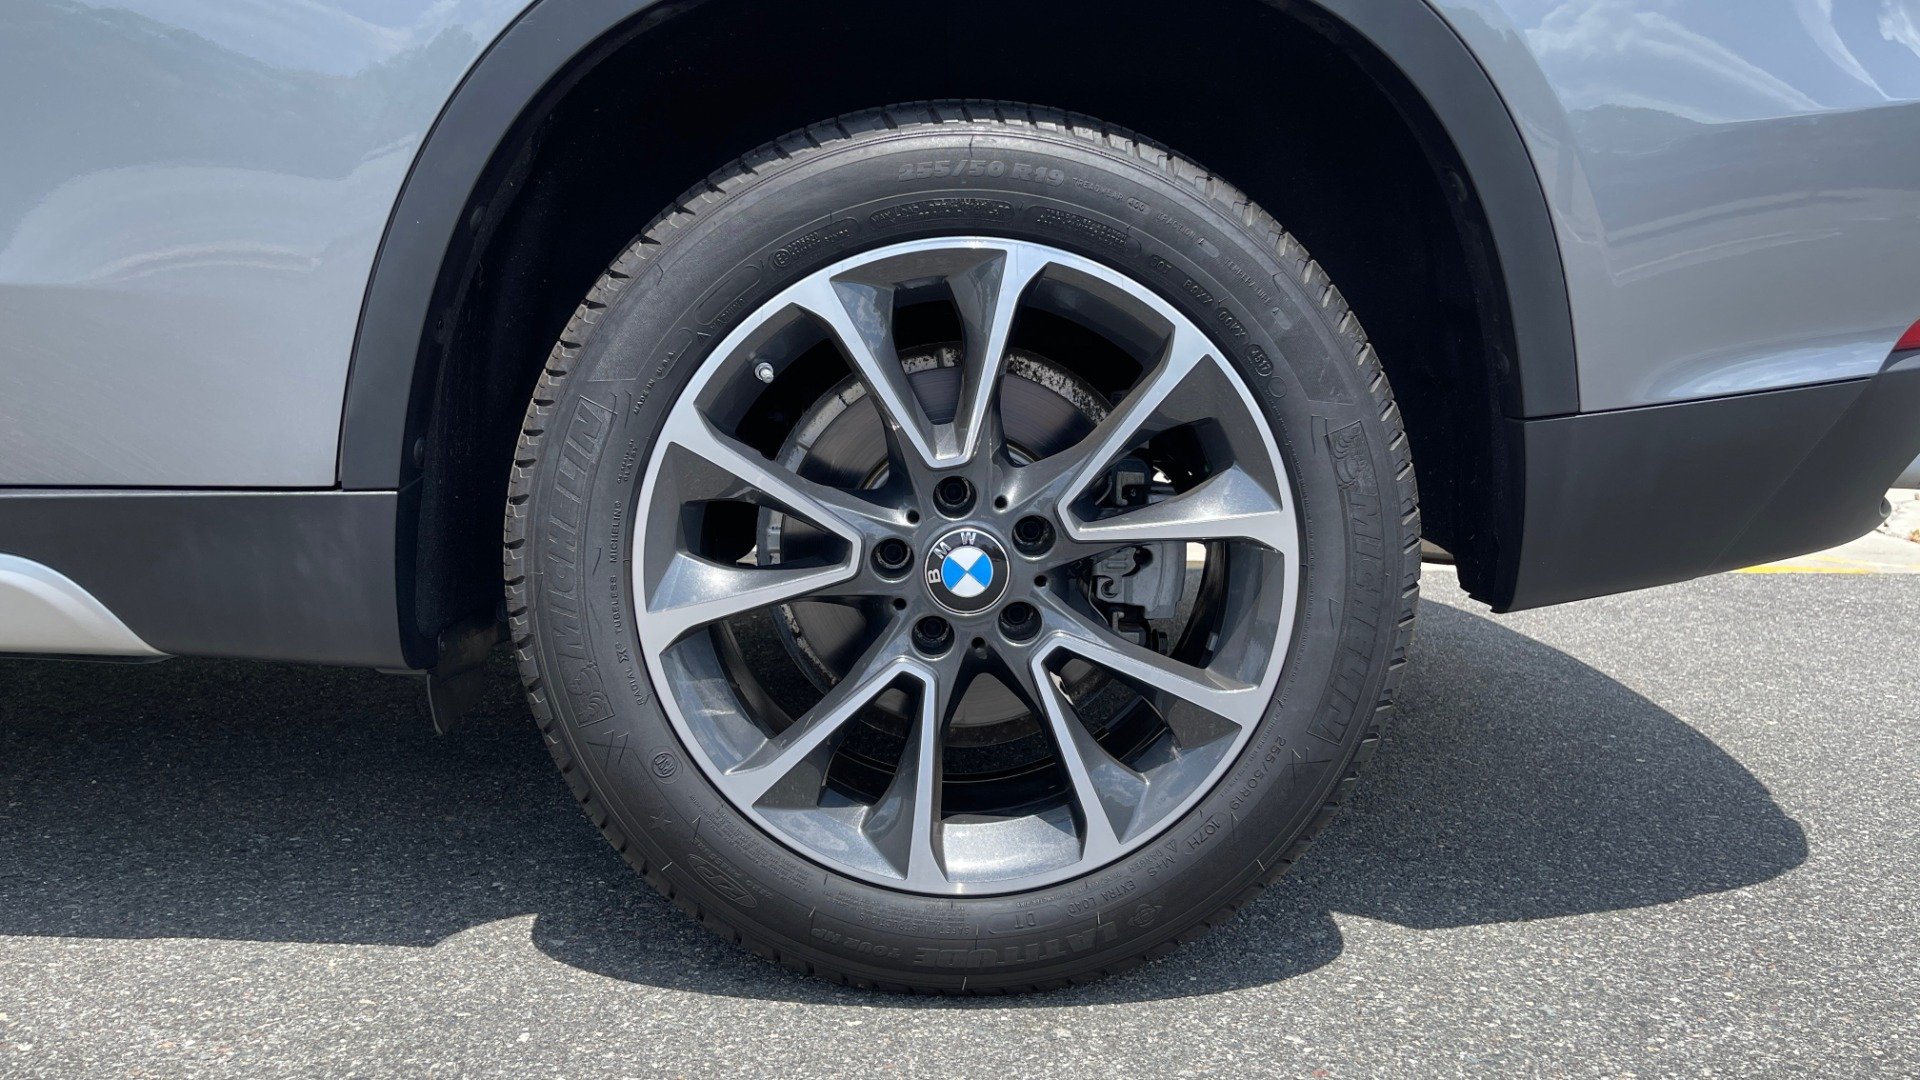 Used 2018 BMW X5 XDRIVE35I PREMIUM / DRVR ASST / WIRELESS CHARGING / CAMERAS for sale $46,995 at Formula Imports in Charlotte NC 28227 83